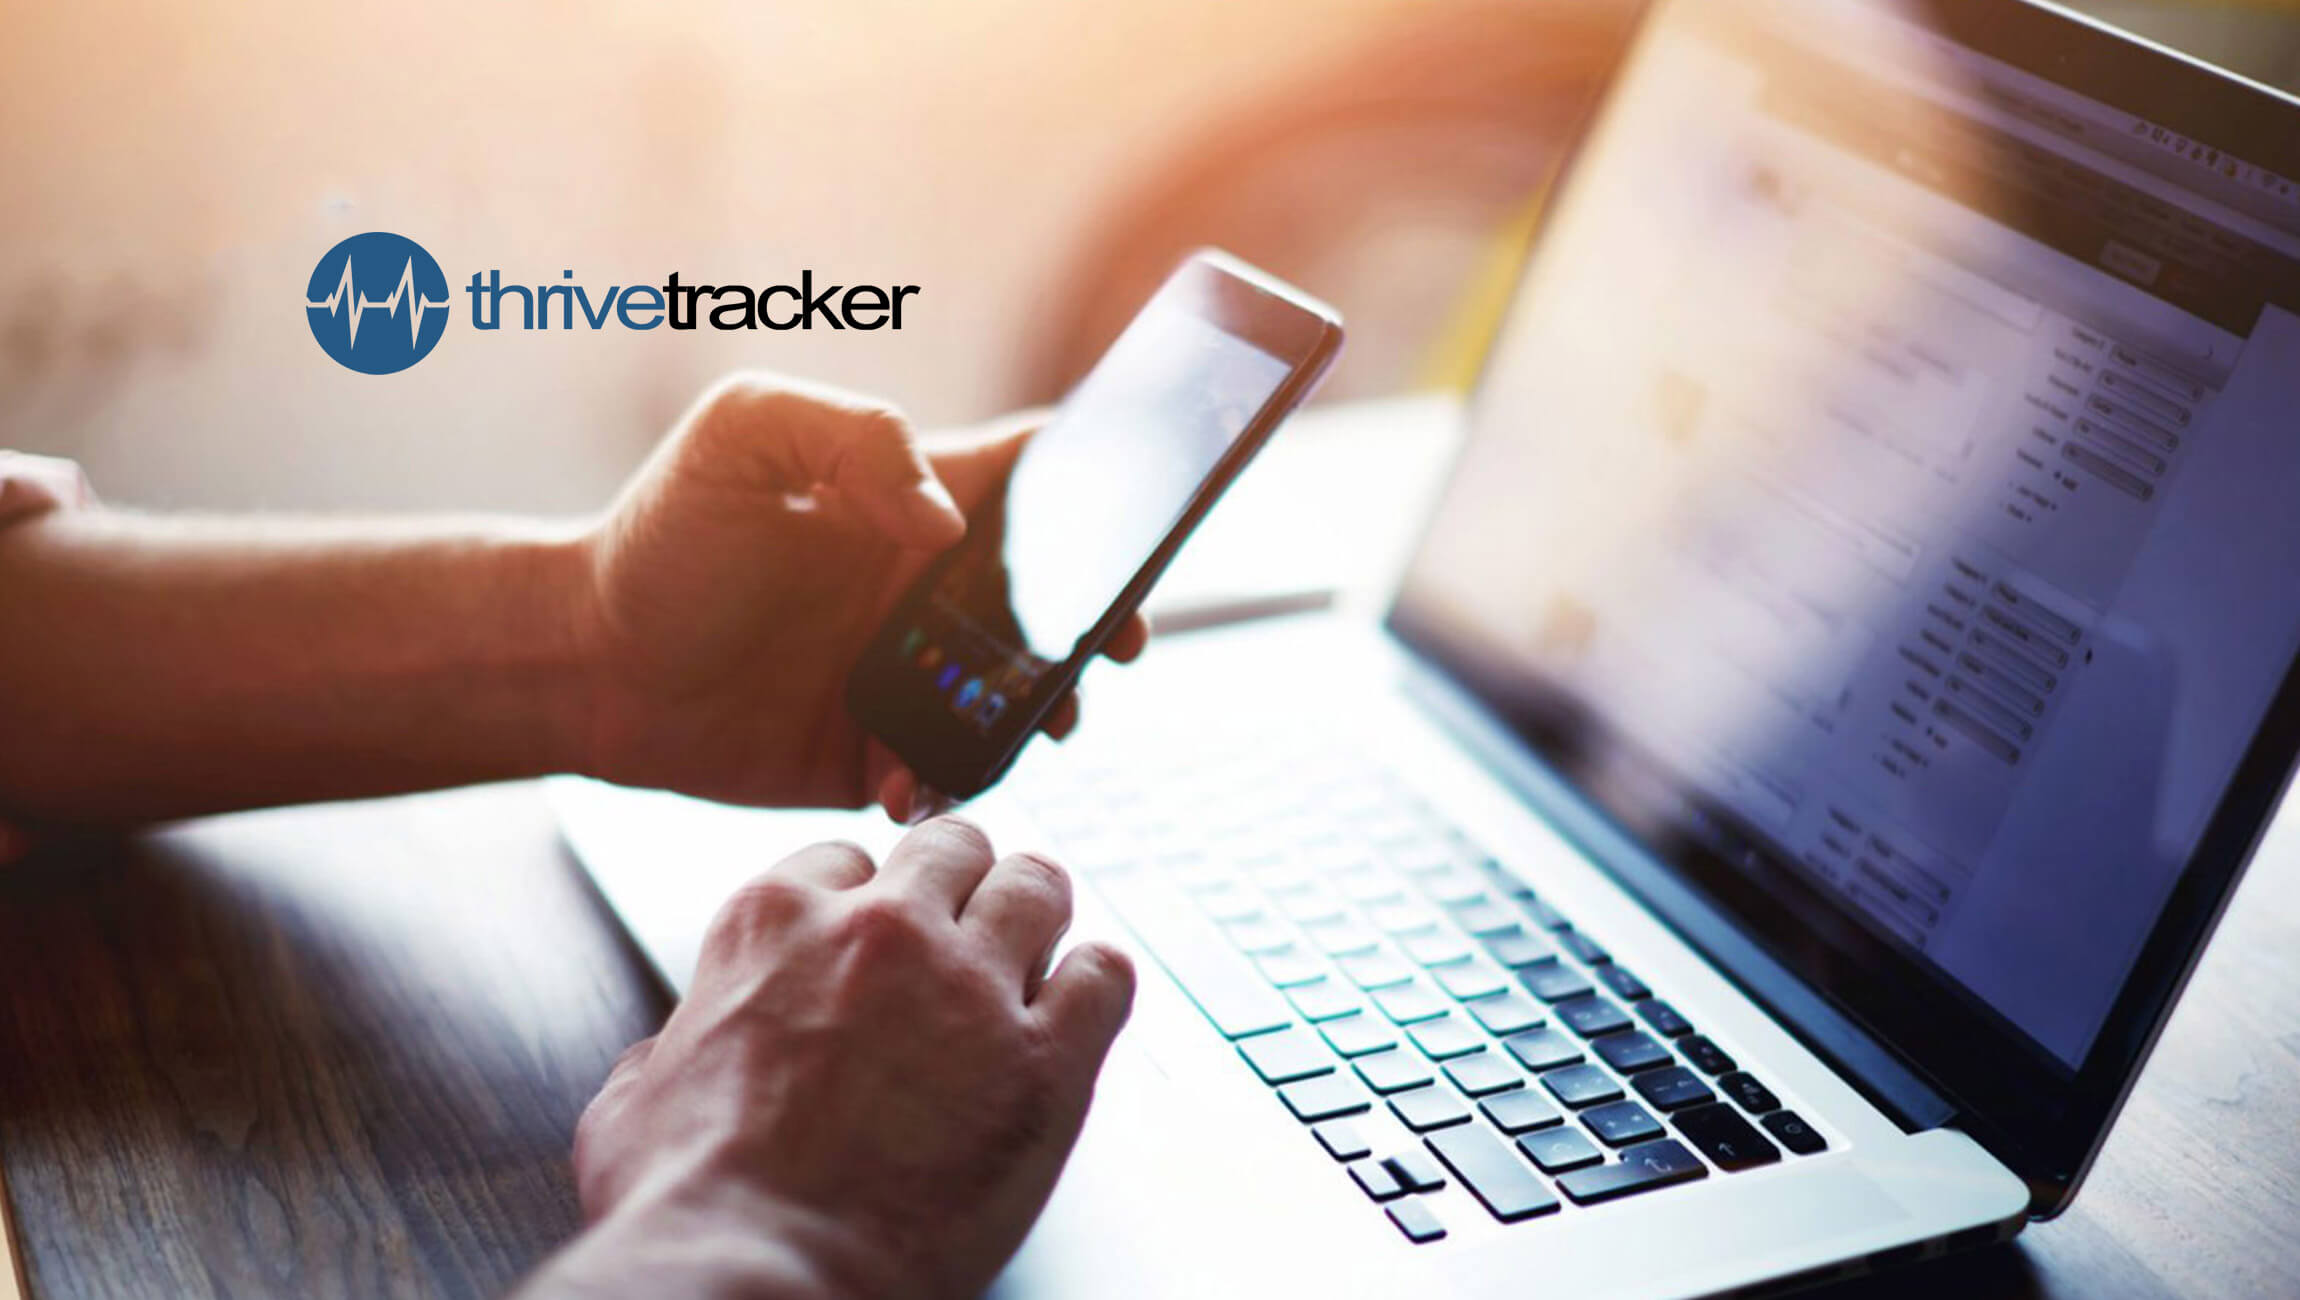 thrivetracker